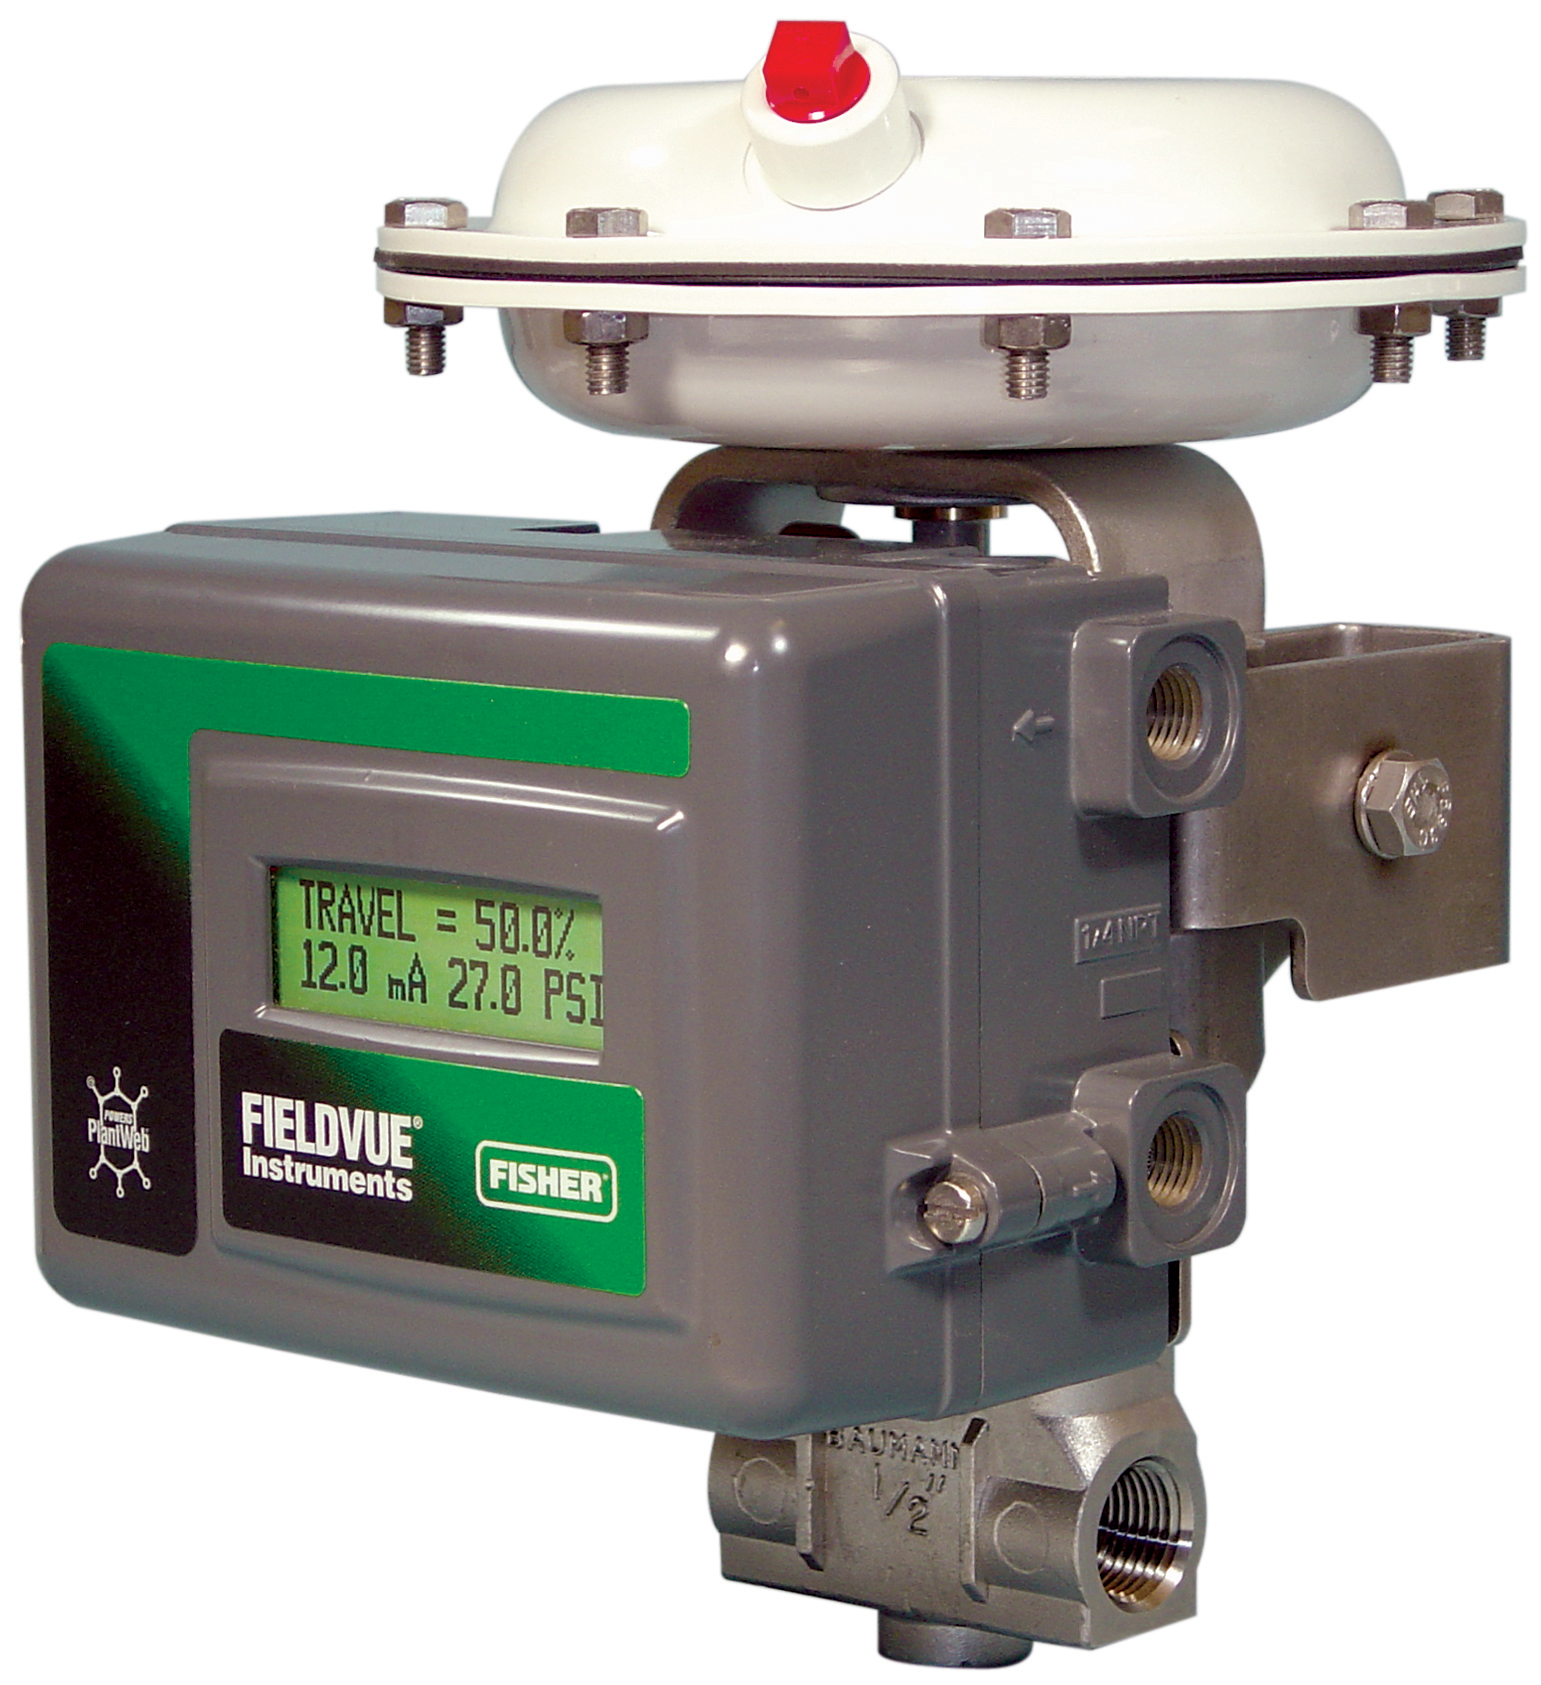 Fisher FIELDVUE DVC2000 digital valve controller.